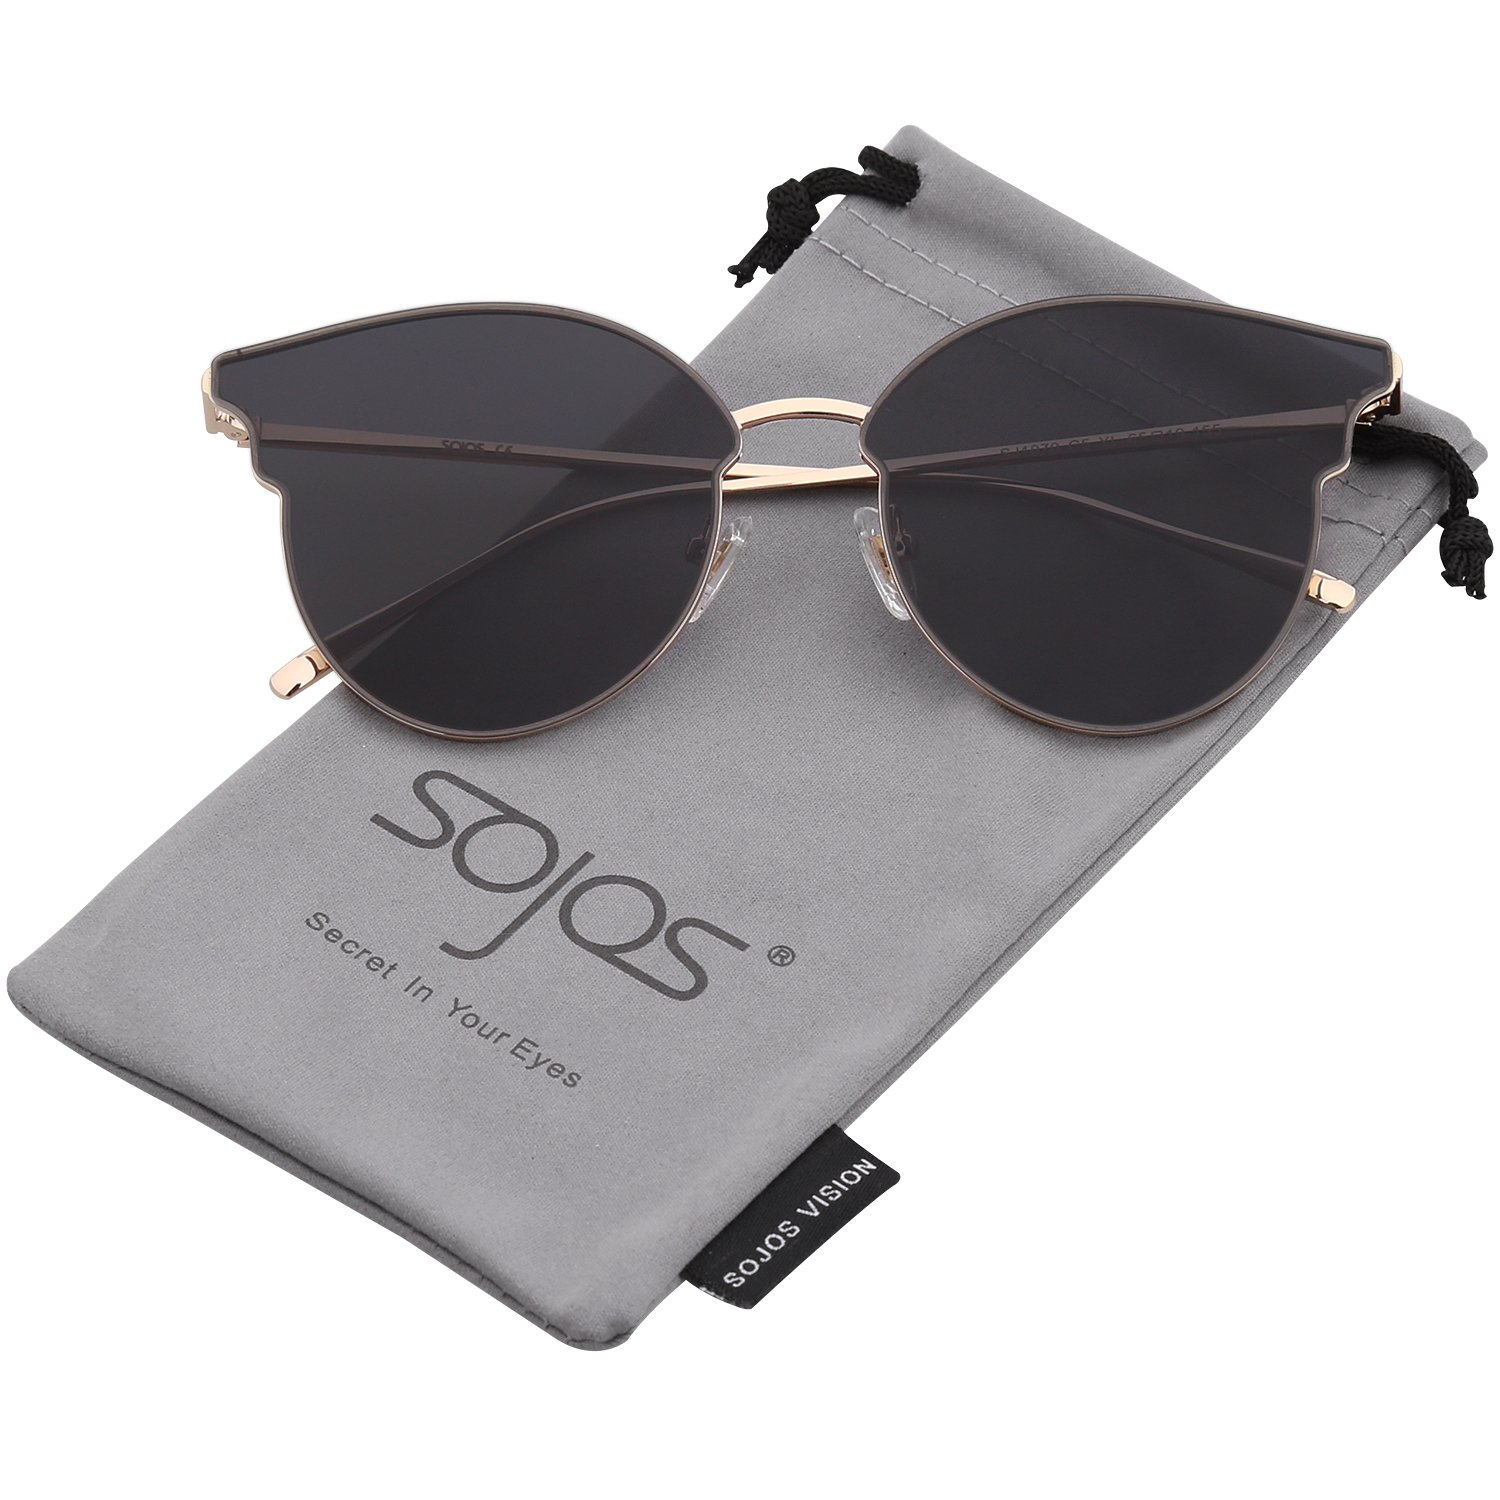 047d306c0d SOJOS Fashion Cateye Sunglasses for Women Oversized Flat Mirrored Lens  SJ1055 with Thin Gold Frame Grey Lens